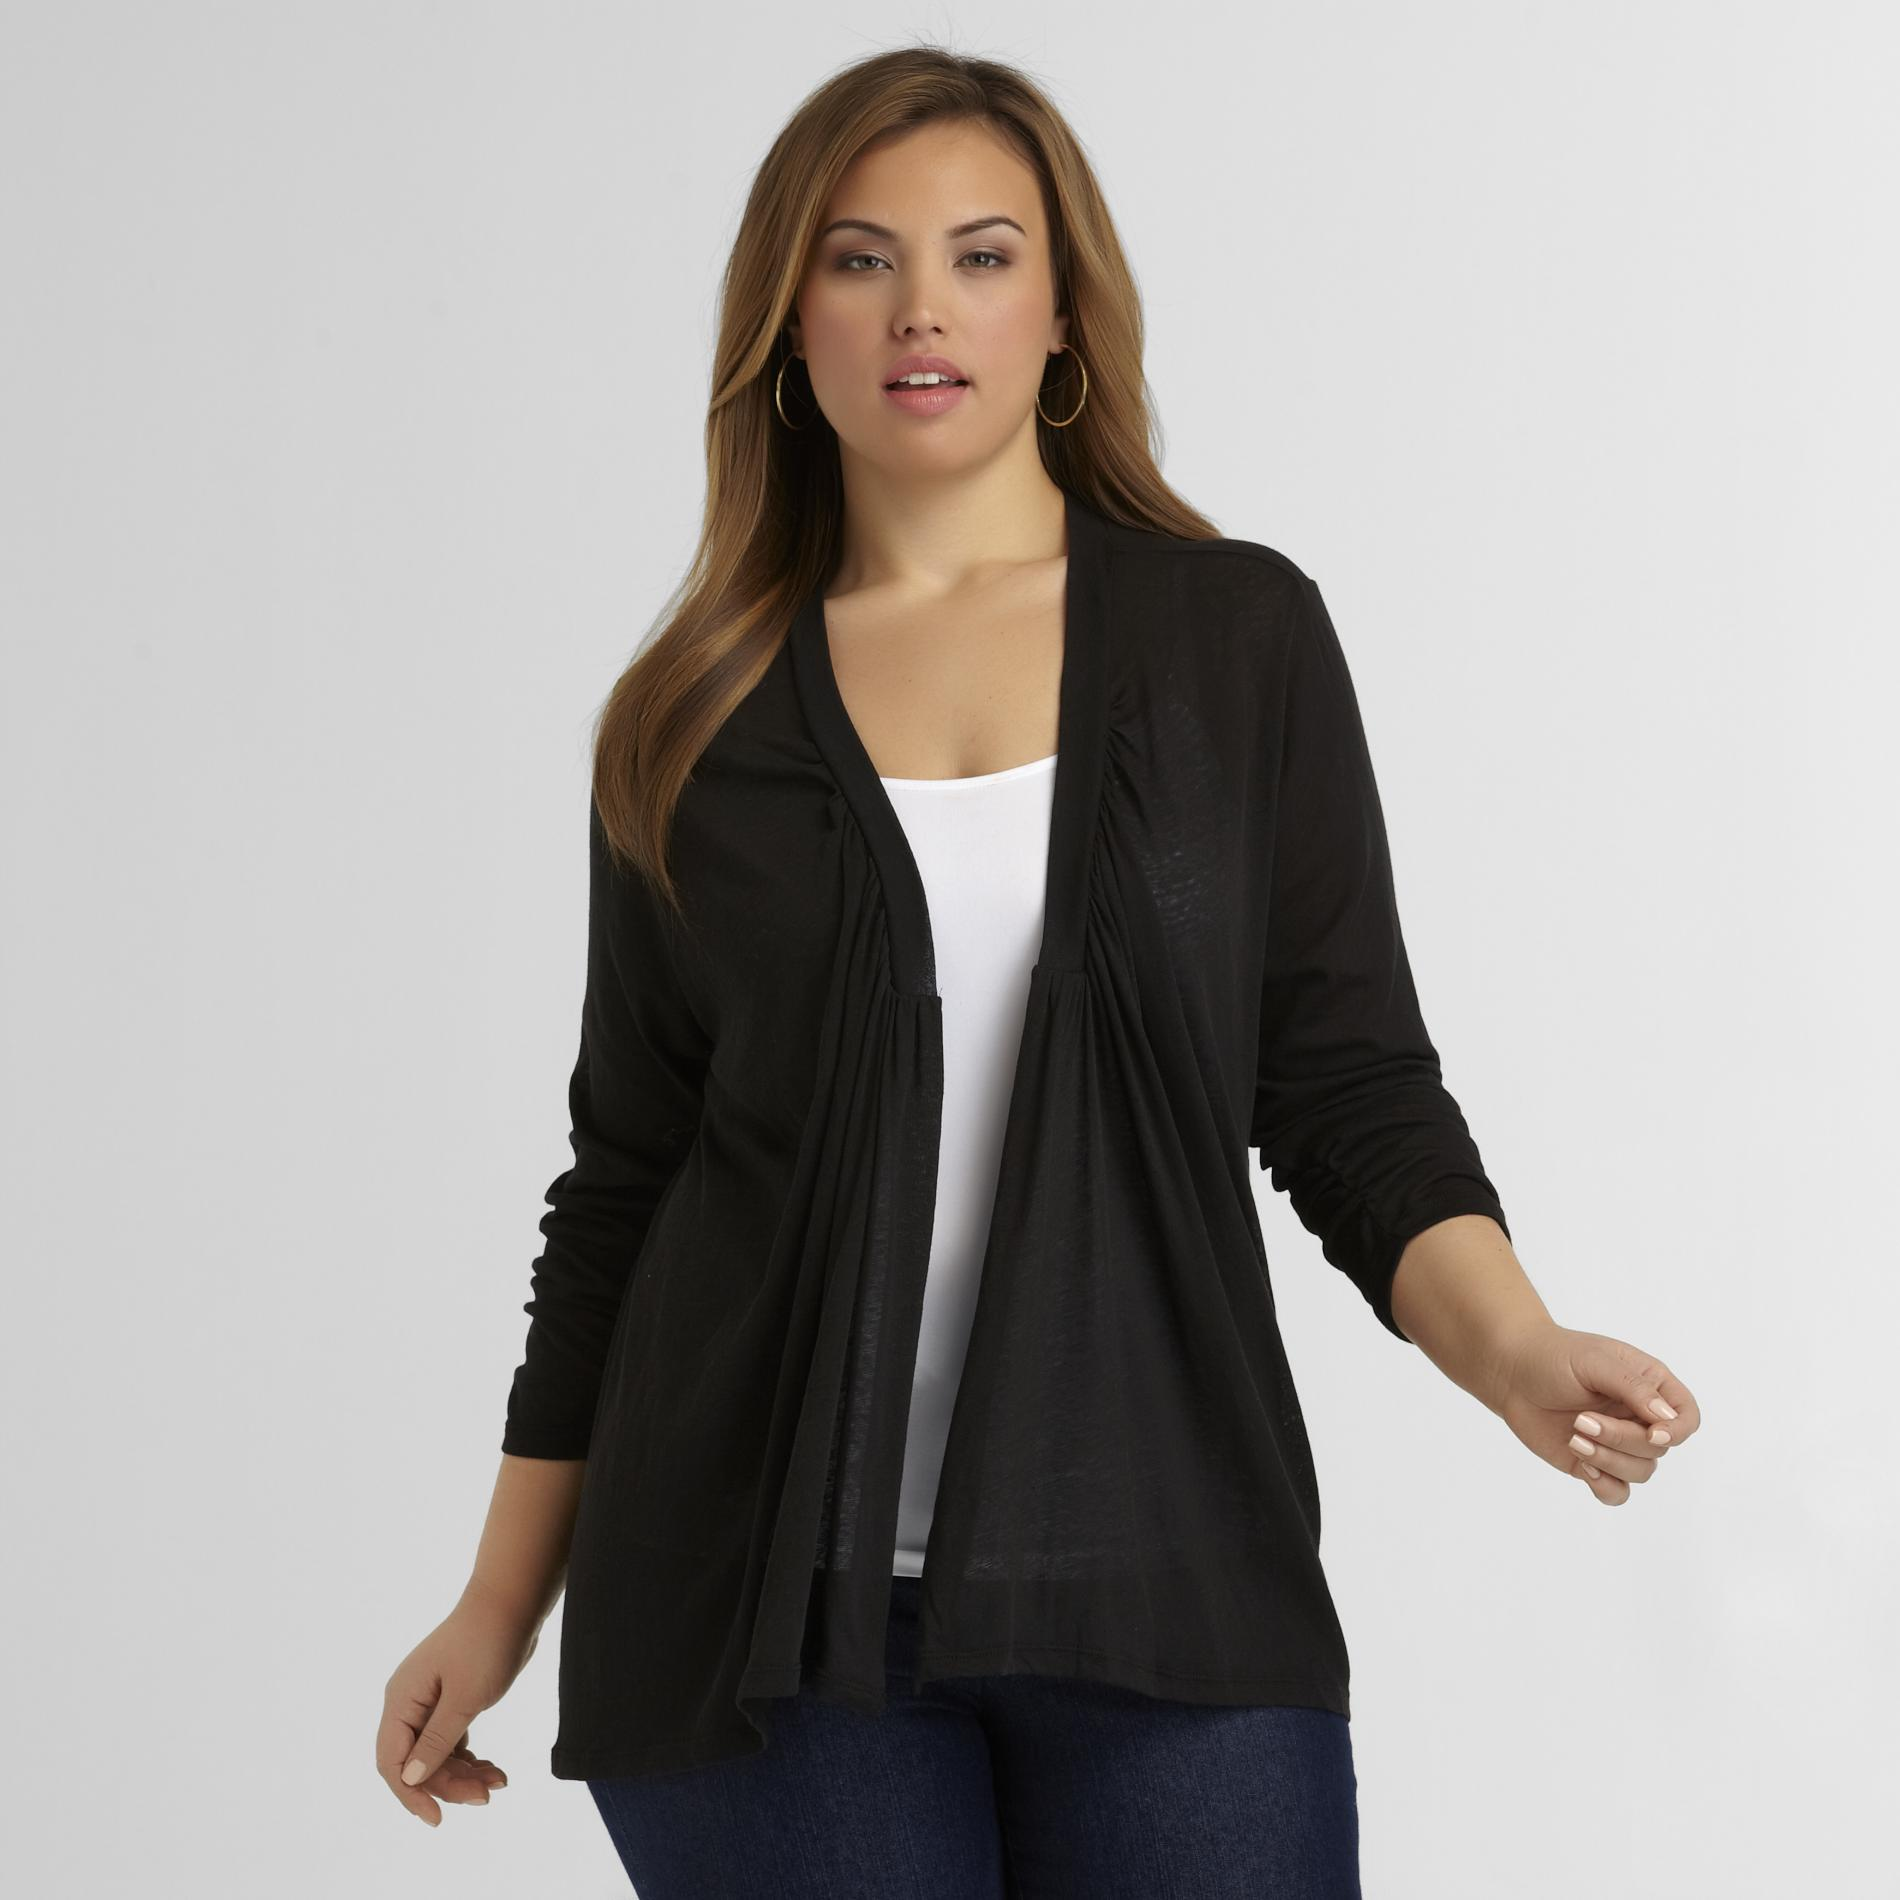 Love Your Style, Love Your Size Women's Plus Semi-Sheer Cardigan at Kmart.com